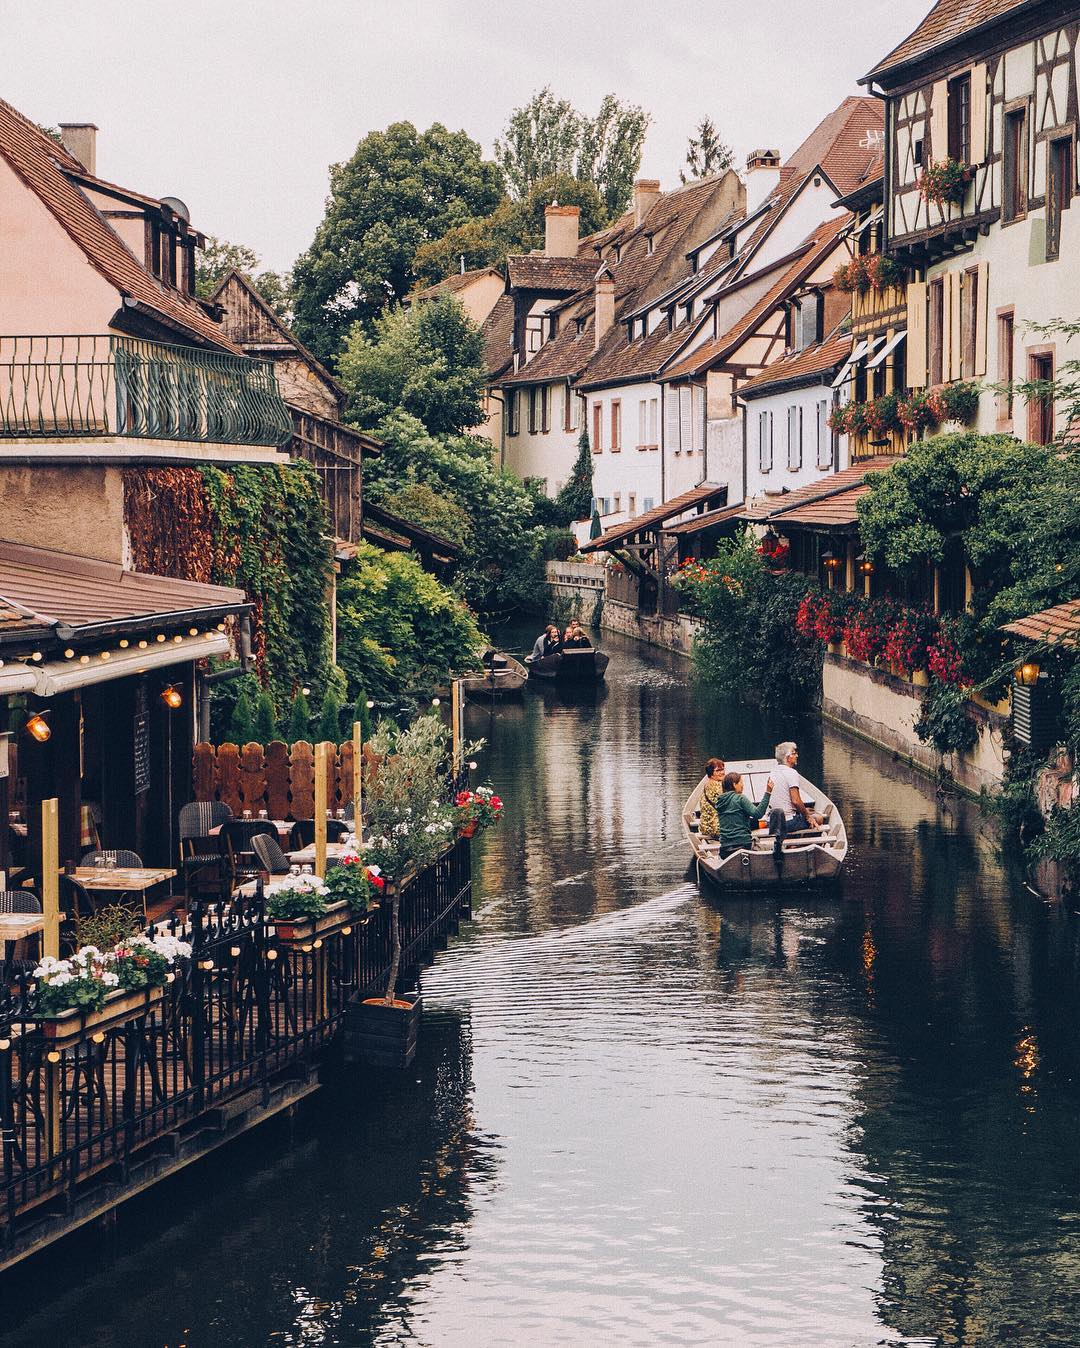 Canal of the Lauch River flowing through the historic old town in Colmar, Alsace, Eastern France